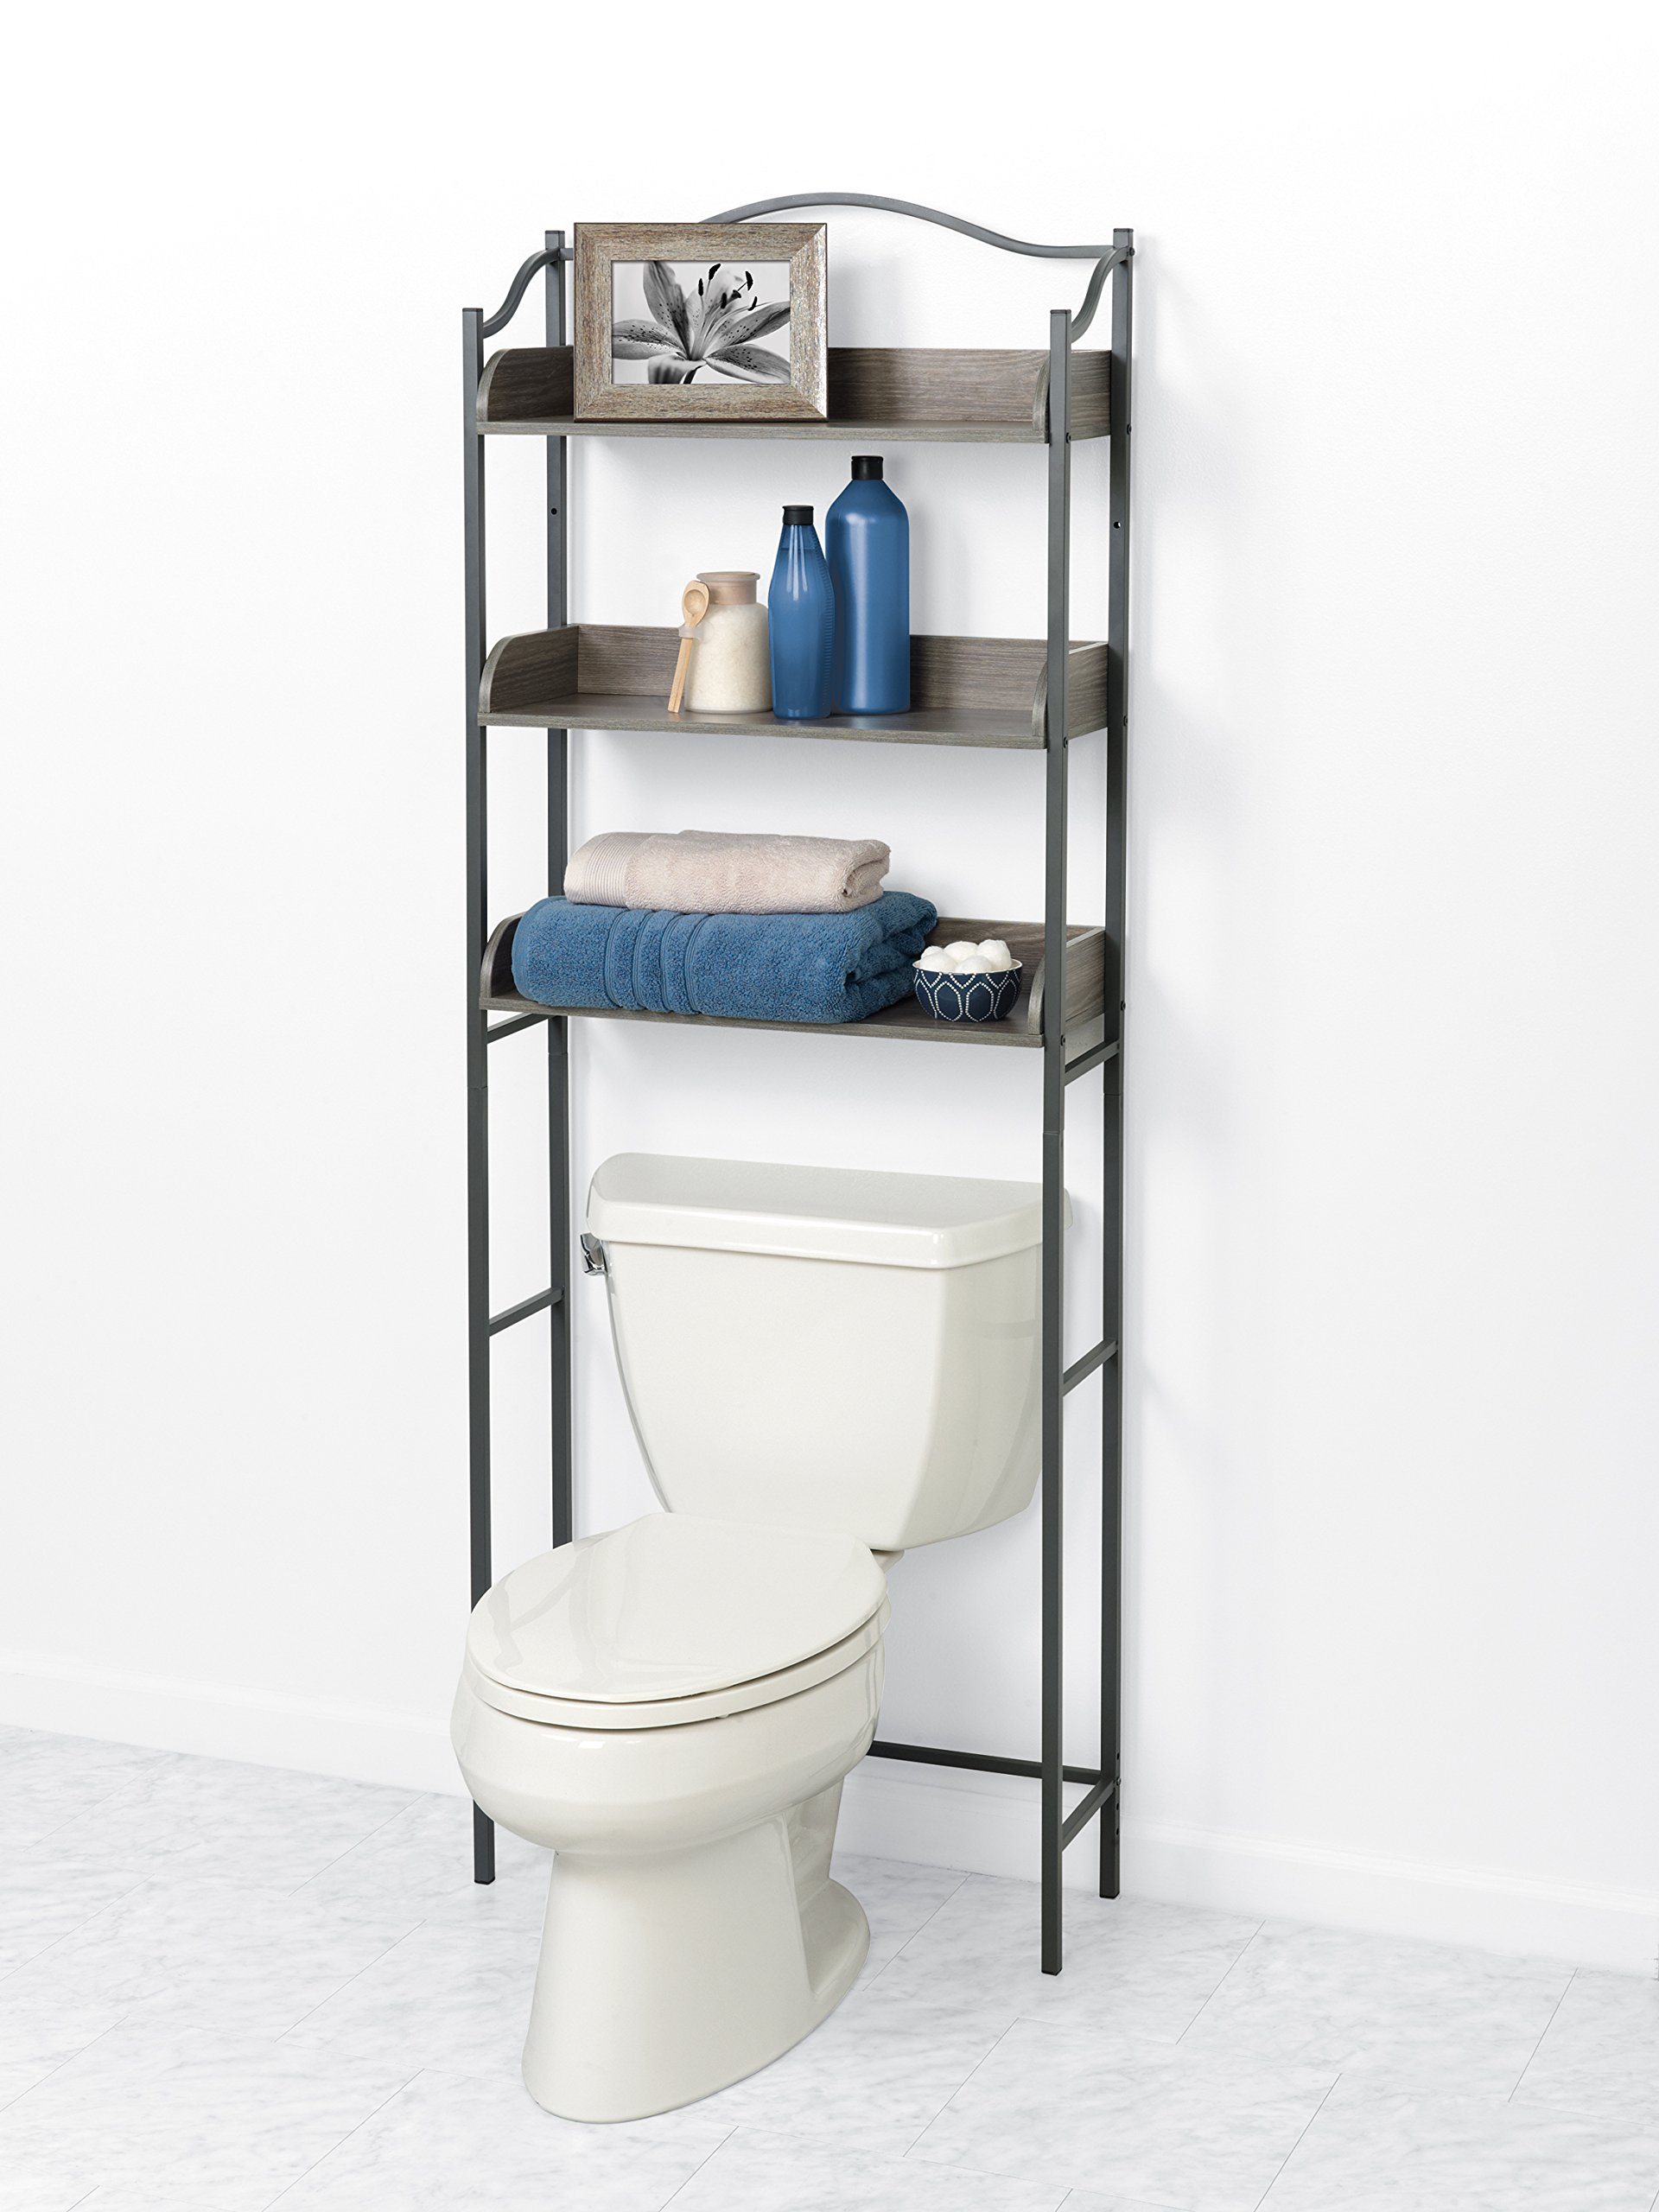 Zenna Home 3-Tier Over-the-Toilet Bathroom Spacesaver, Driftwood Grey/Pewter by Zenna Home (Image #2)